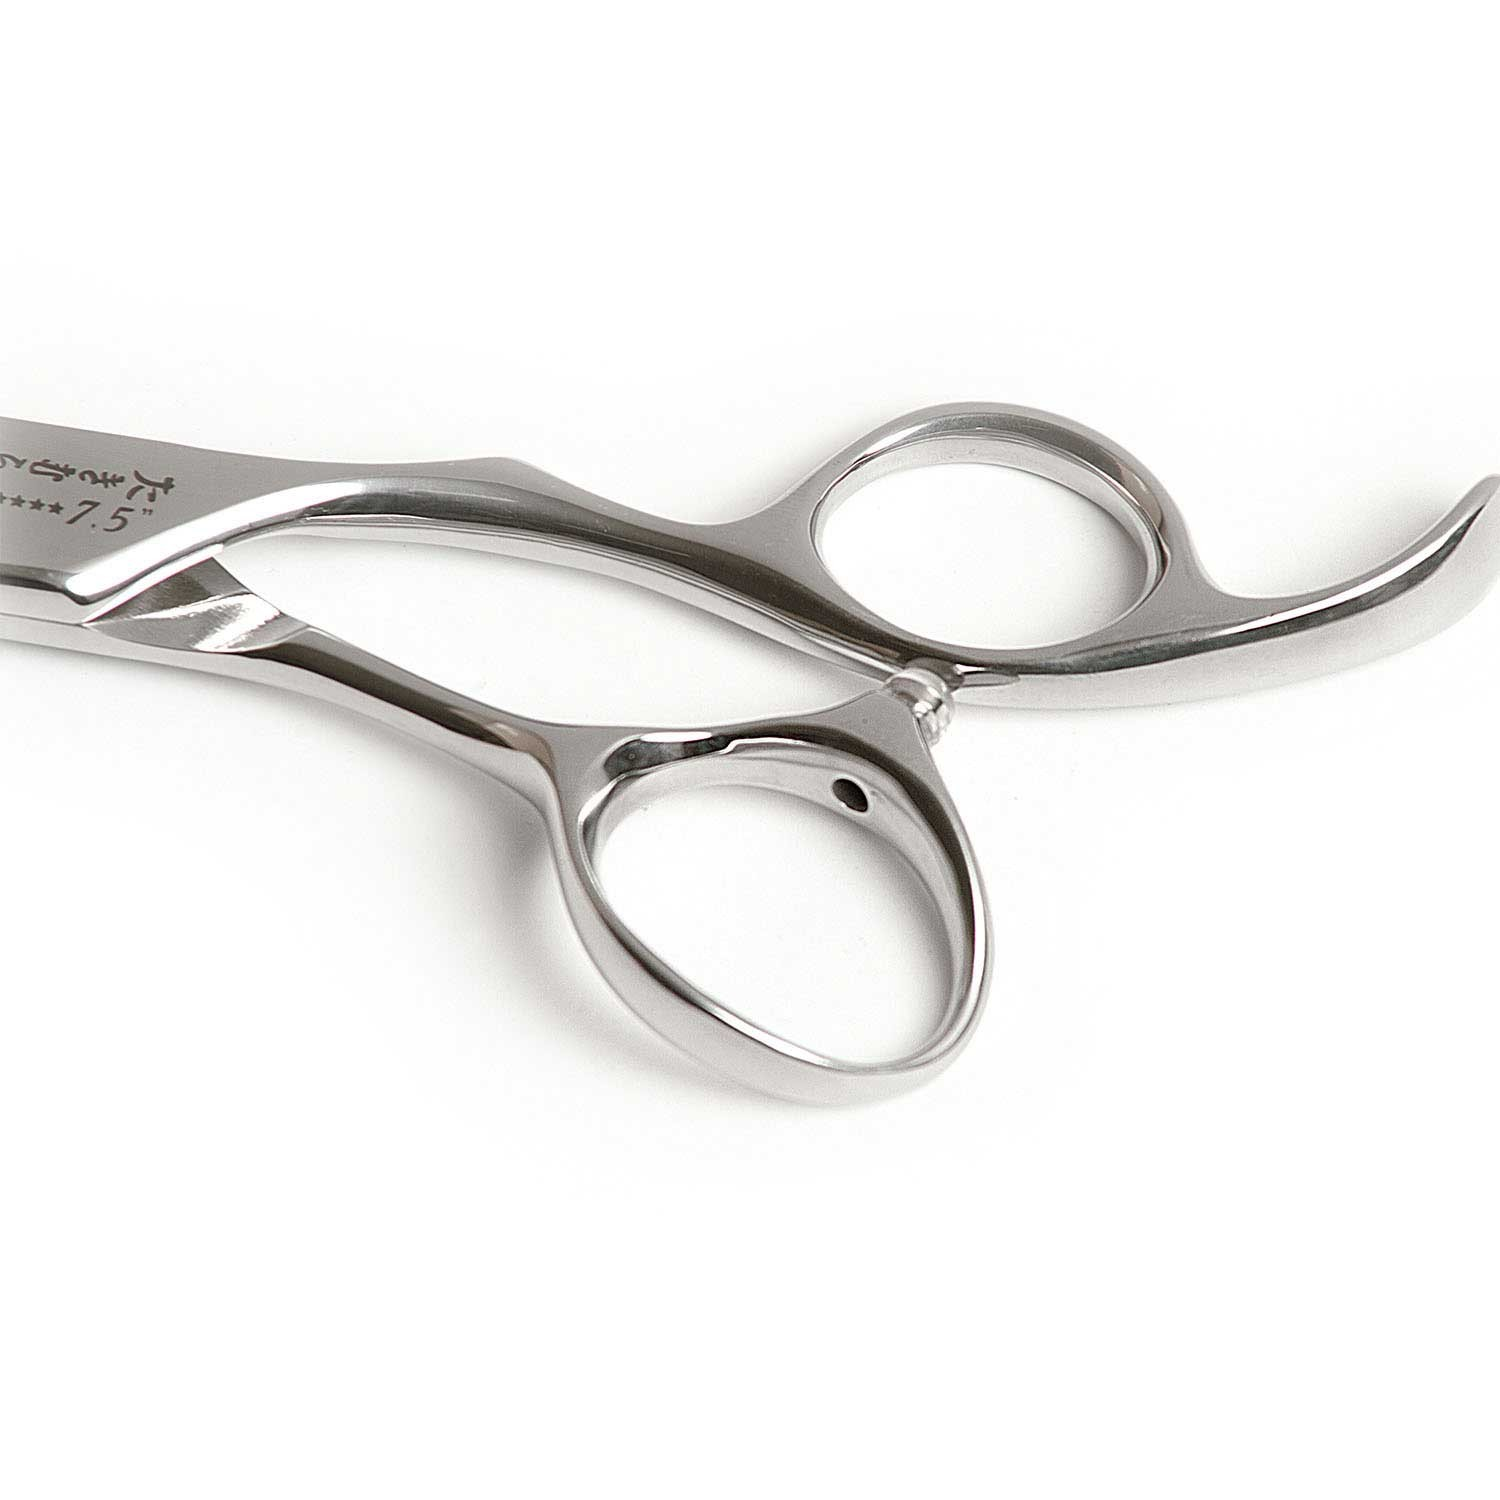 takimura-6-5-barber-scissors 2